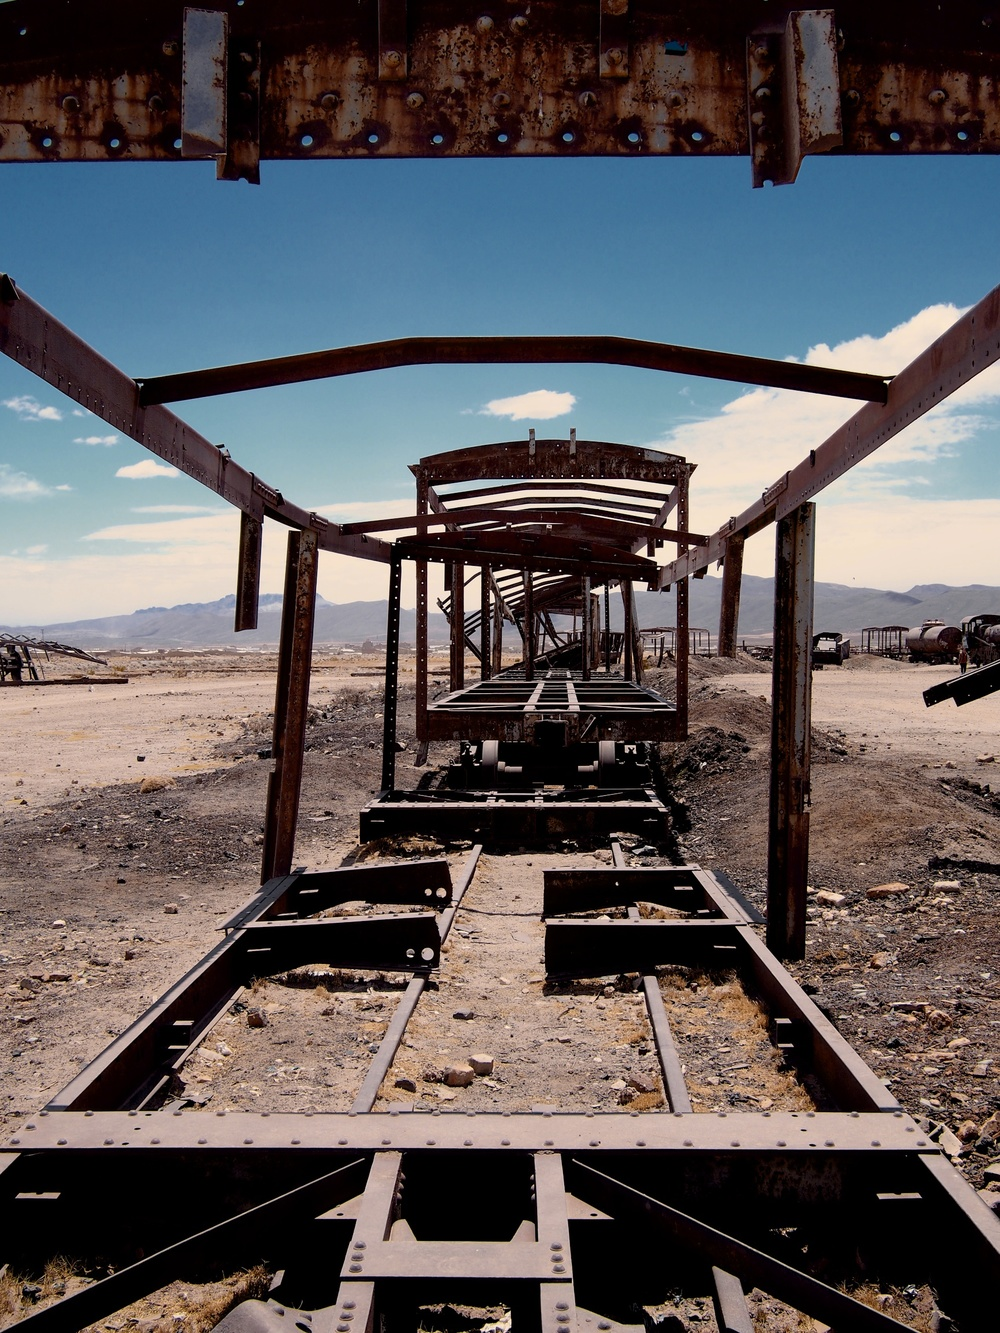 Cementerio de trenes (train cemetery) 3 km outside of Uyuni where a collection of abandoned 19th century trains still live